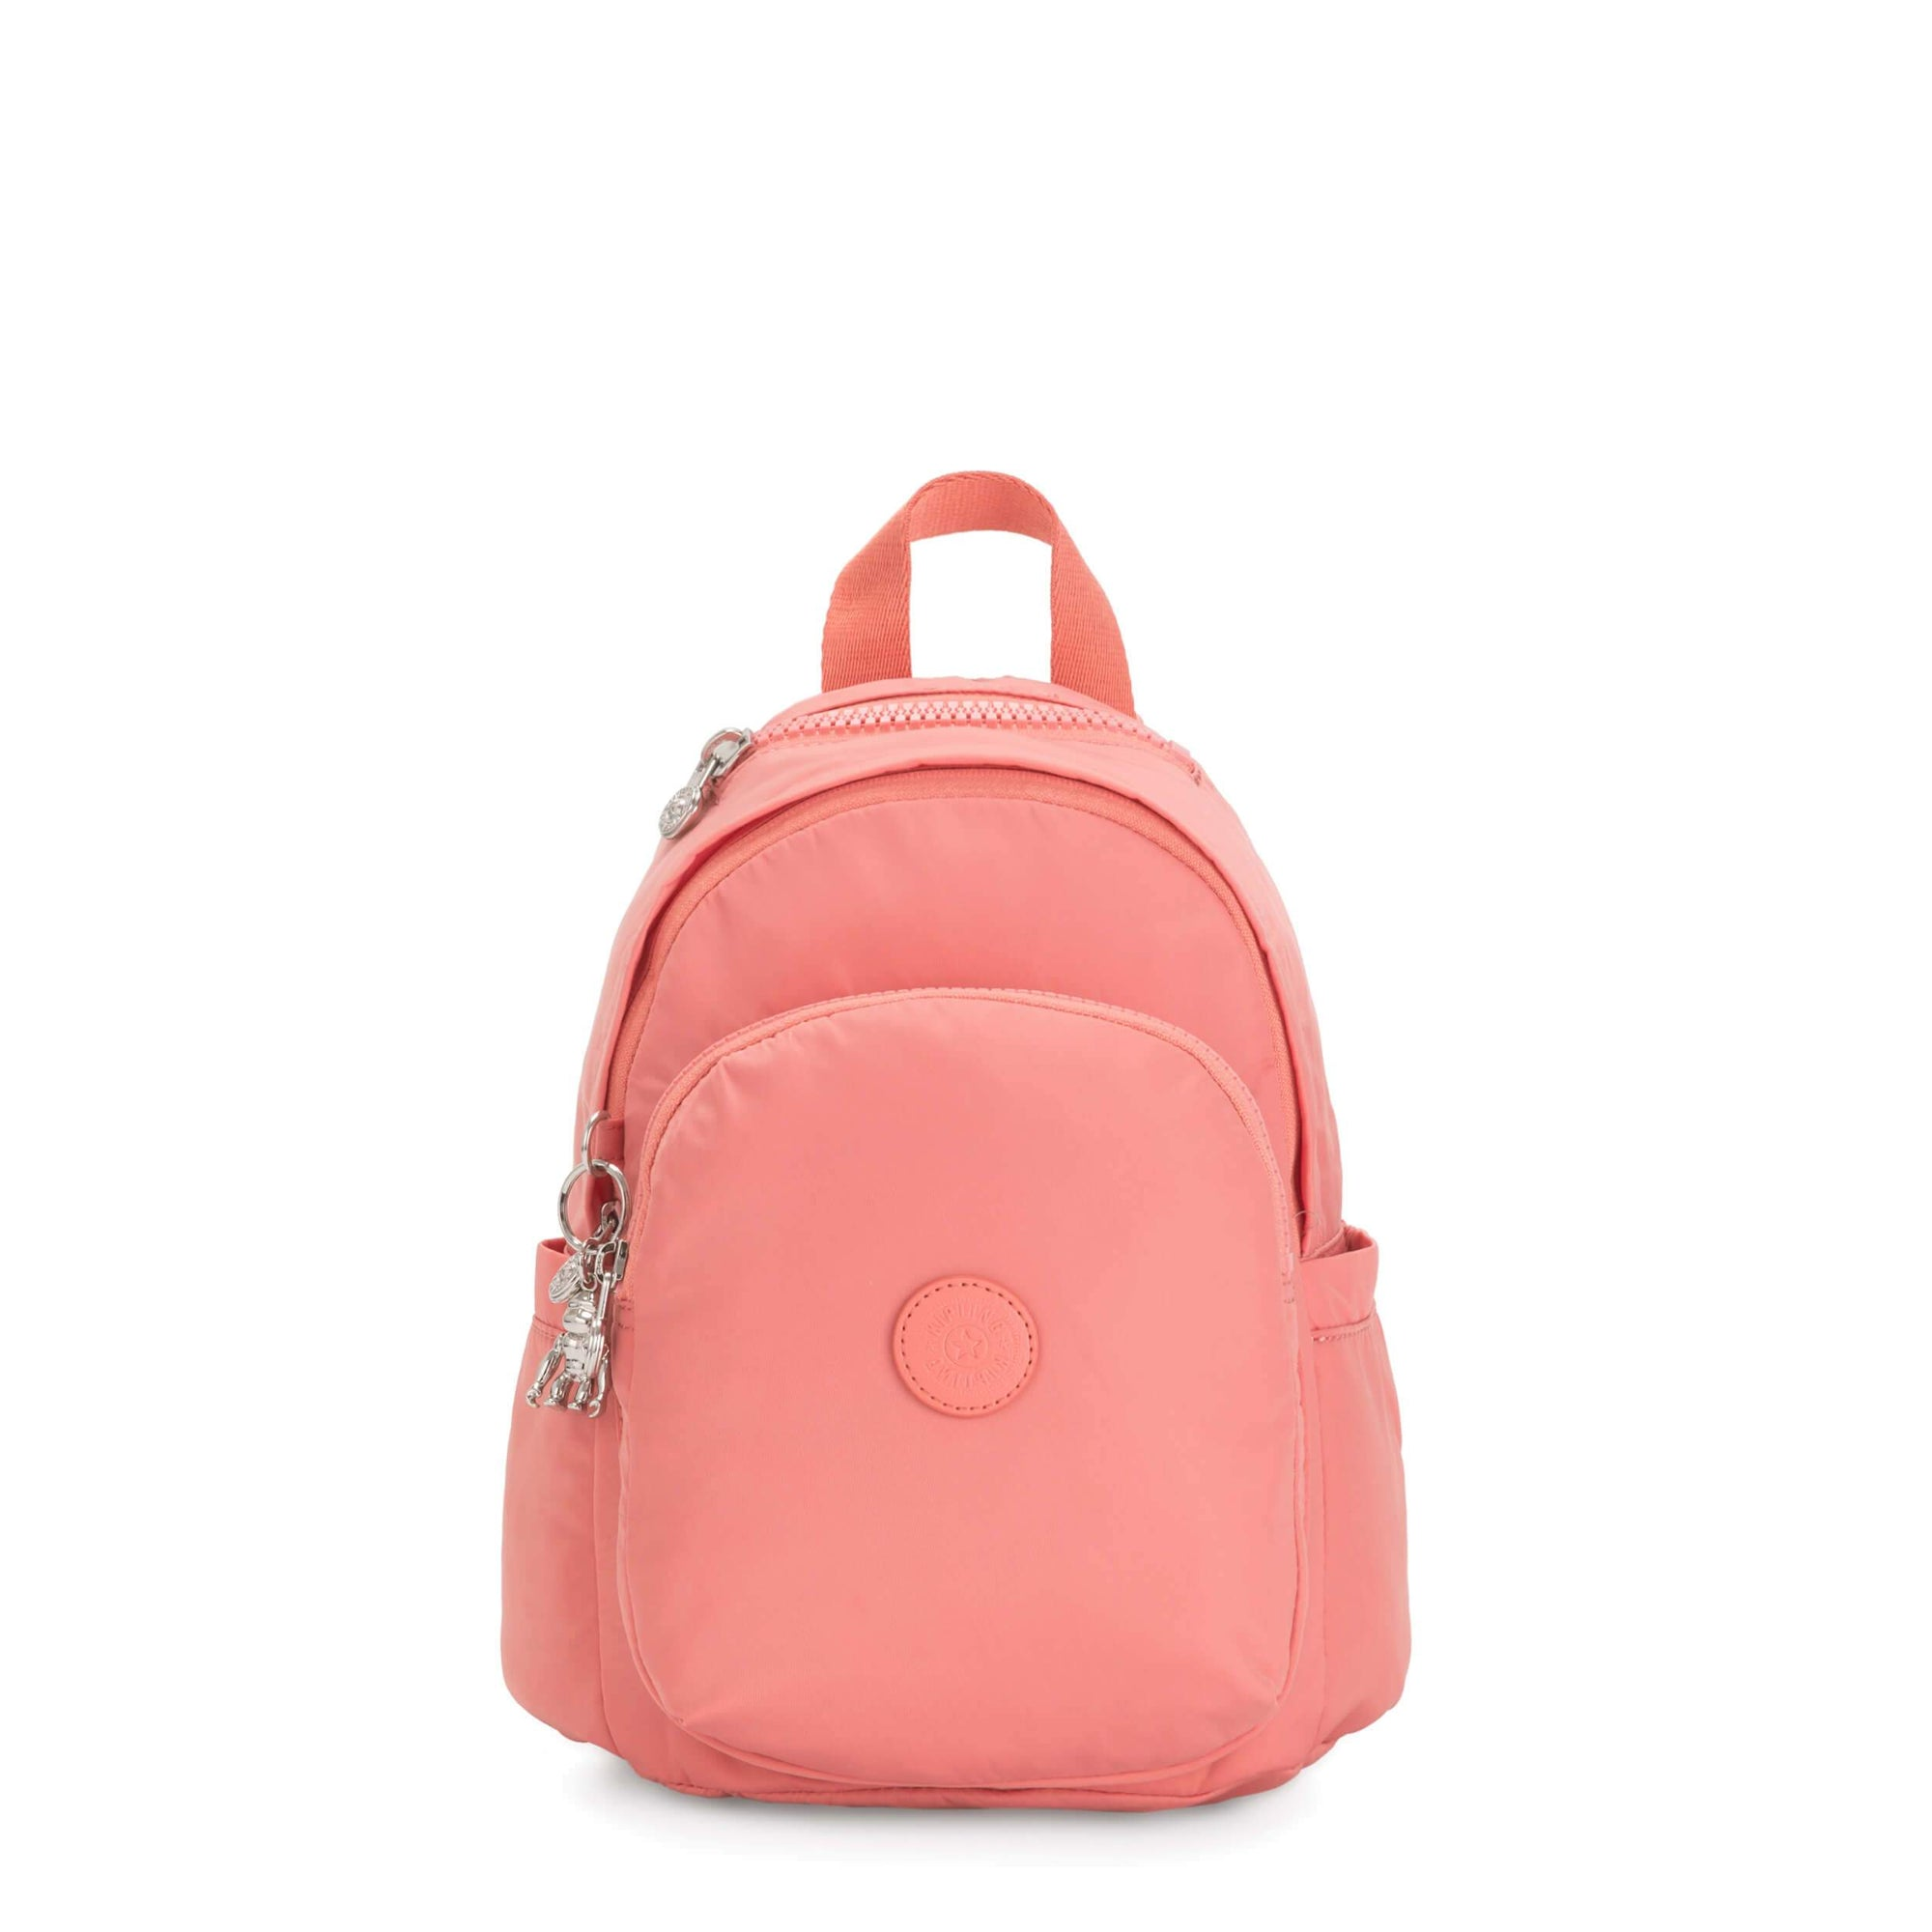 Backpack Kipling Delia Mini